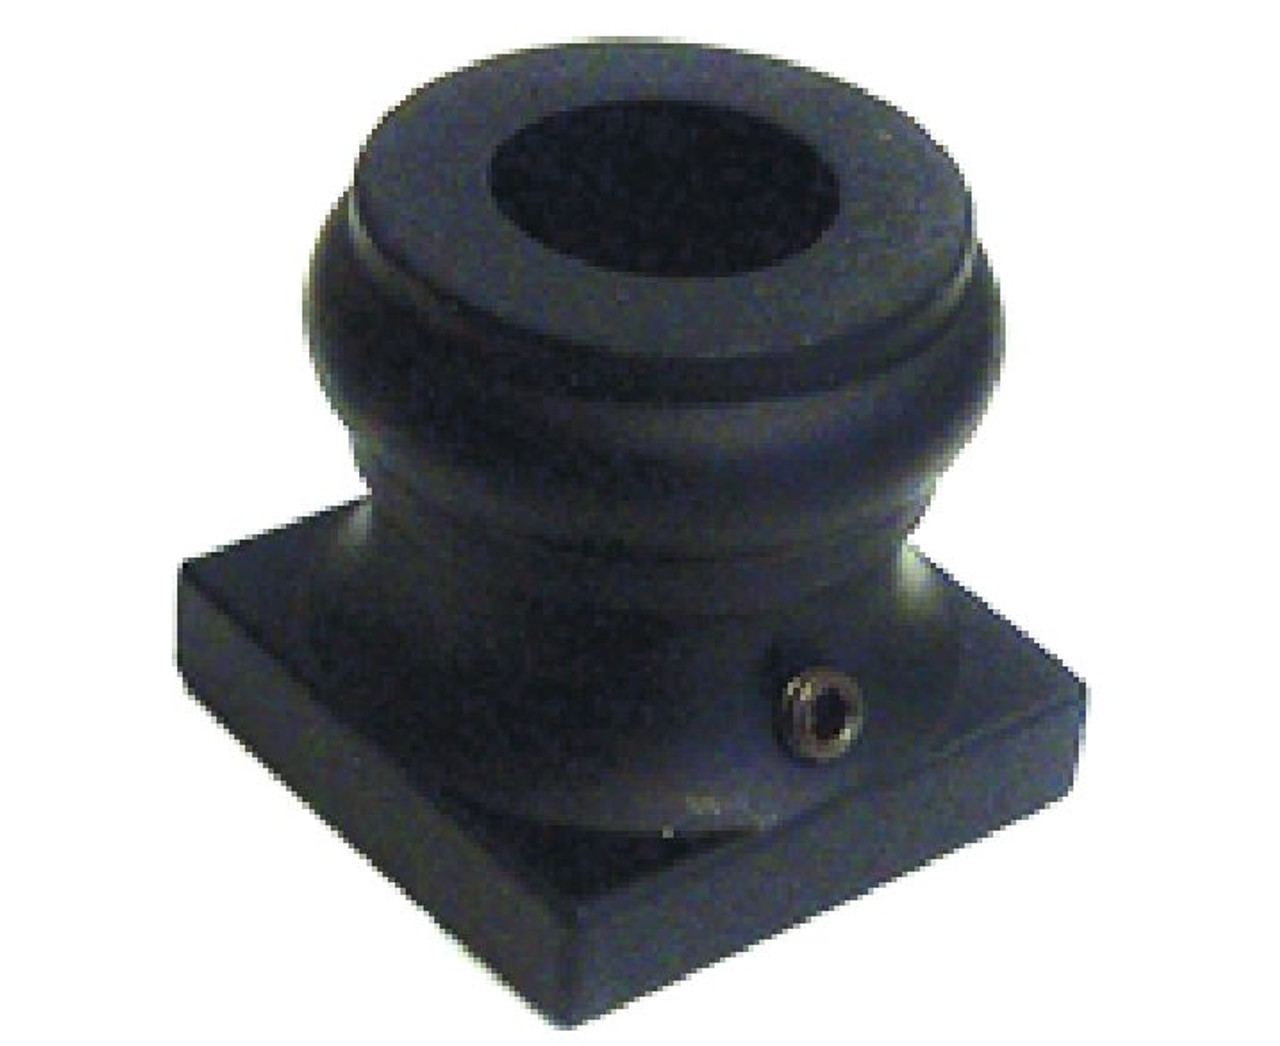 2GR900 Flat Shoe, 16mm for Round Balusters, Shown in Satin Black